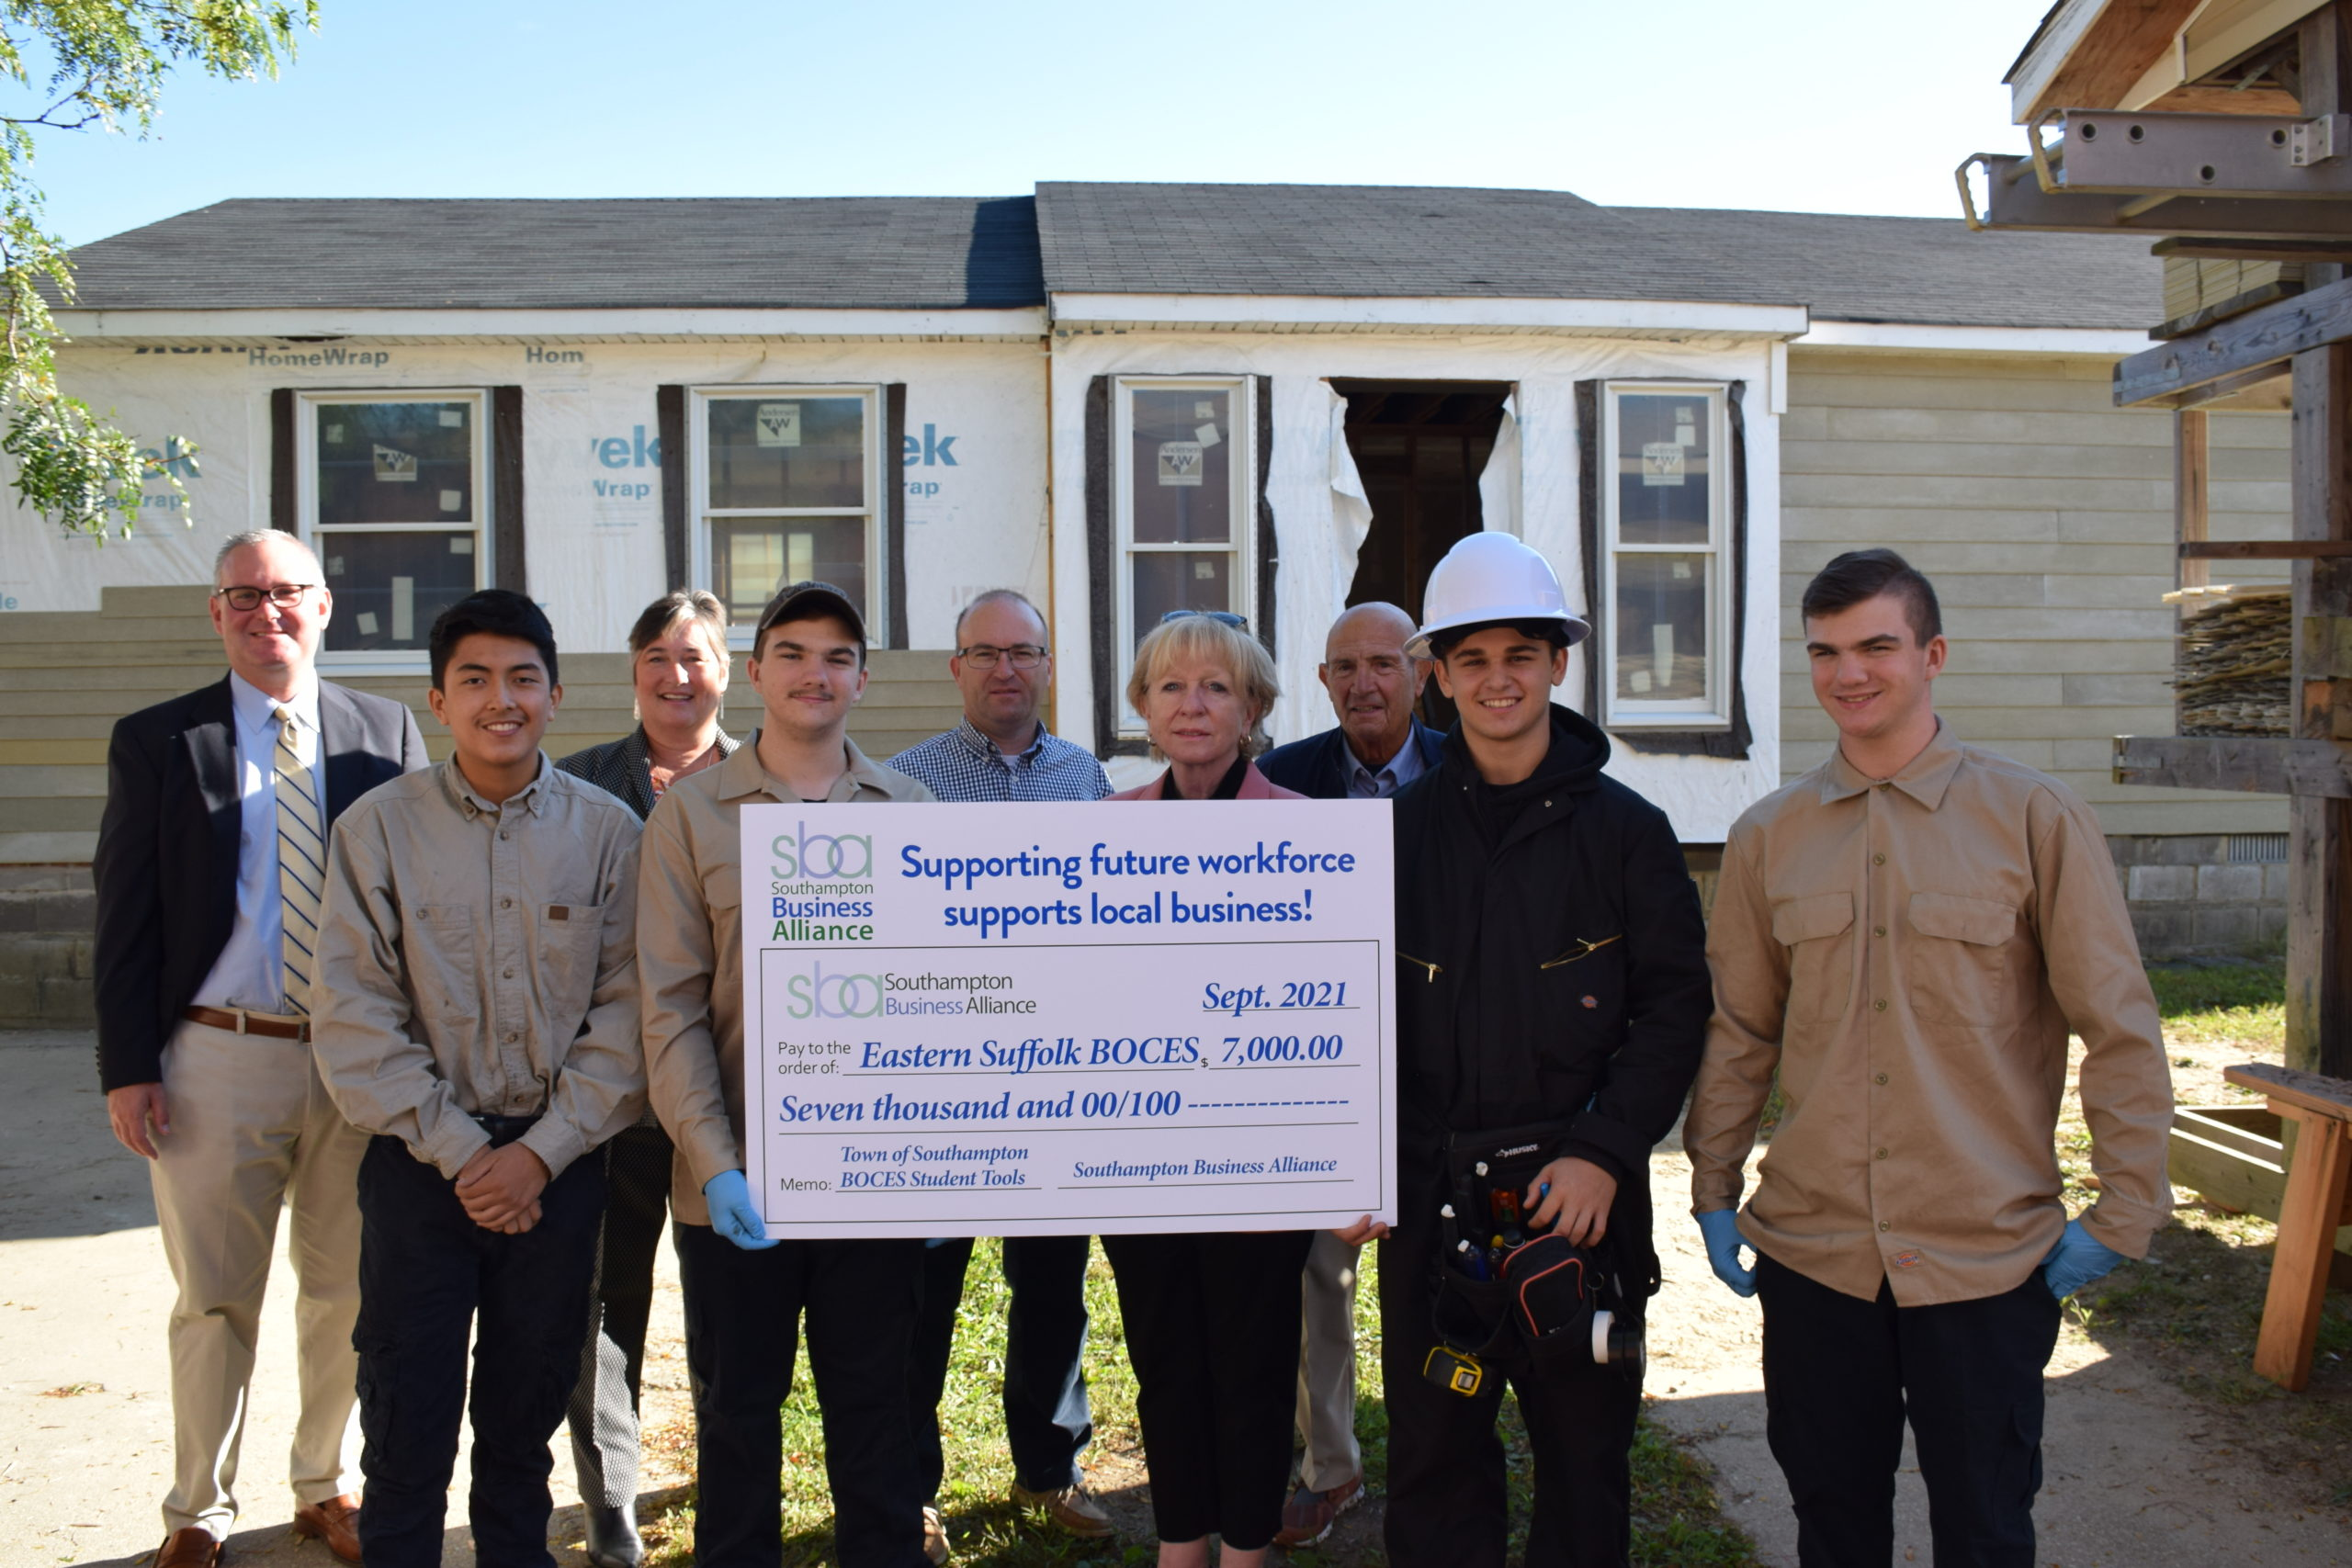 Five Hampton Bays students enrolled in Eastern Suffolk BOCES career and tech ed programs were presented with scholarships from the Southampton Business Alliance.